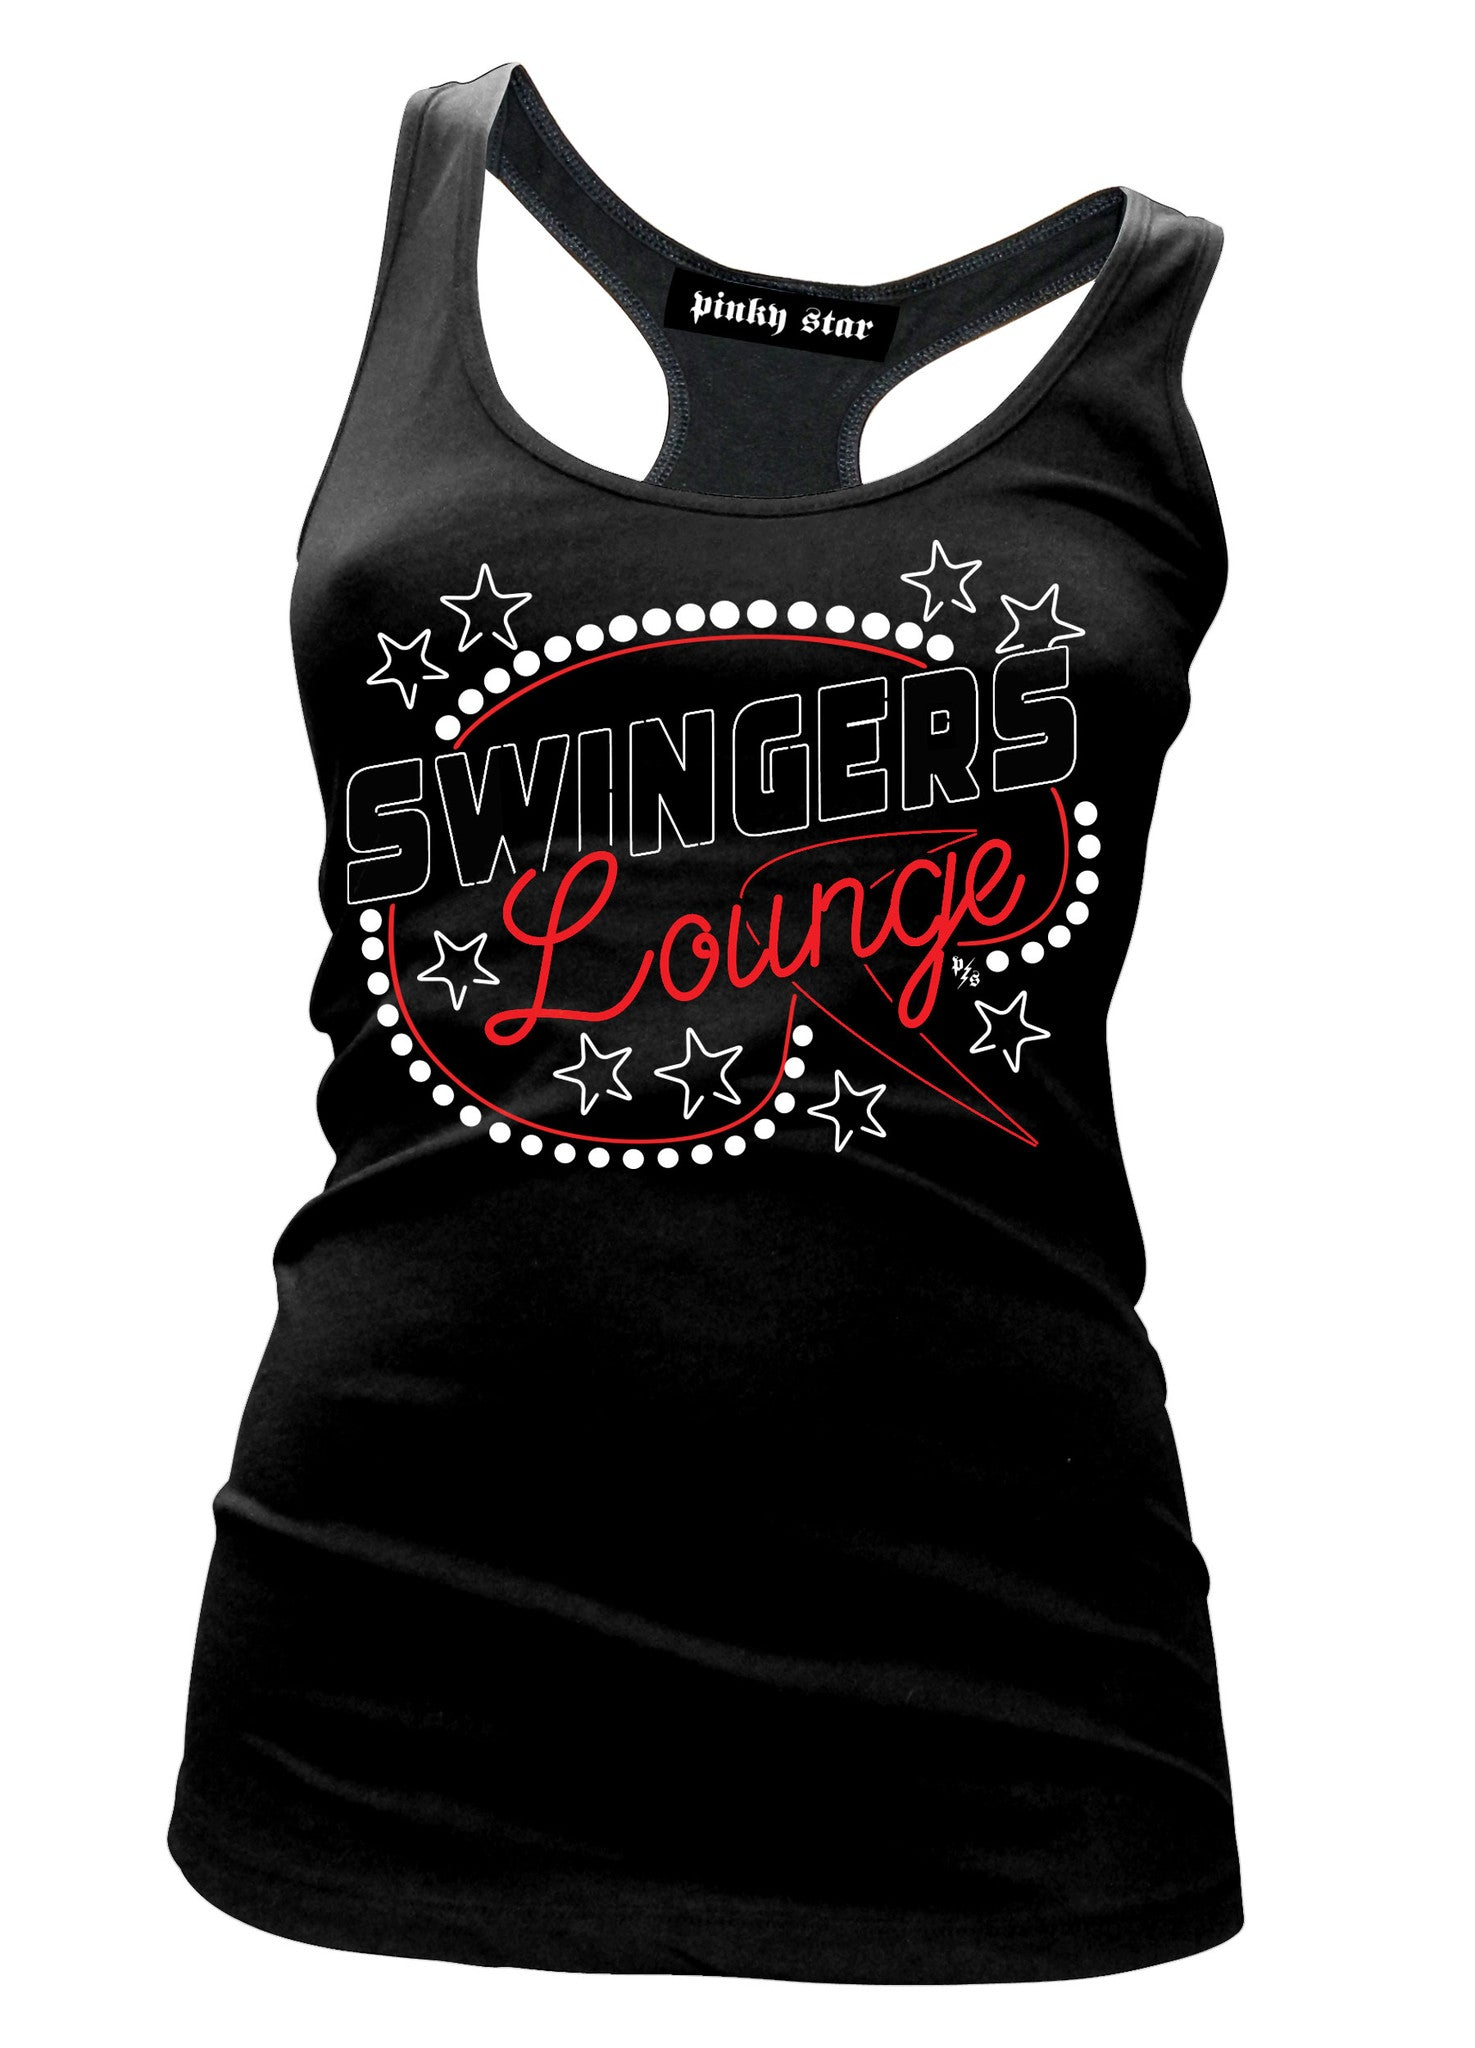 Swinger's Lounge - Pinky Star